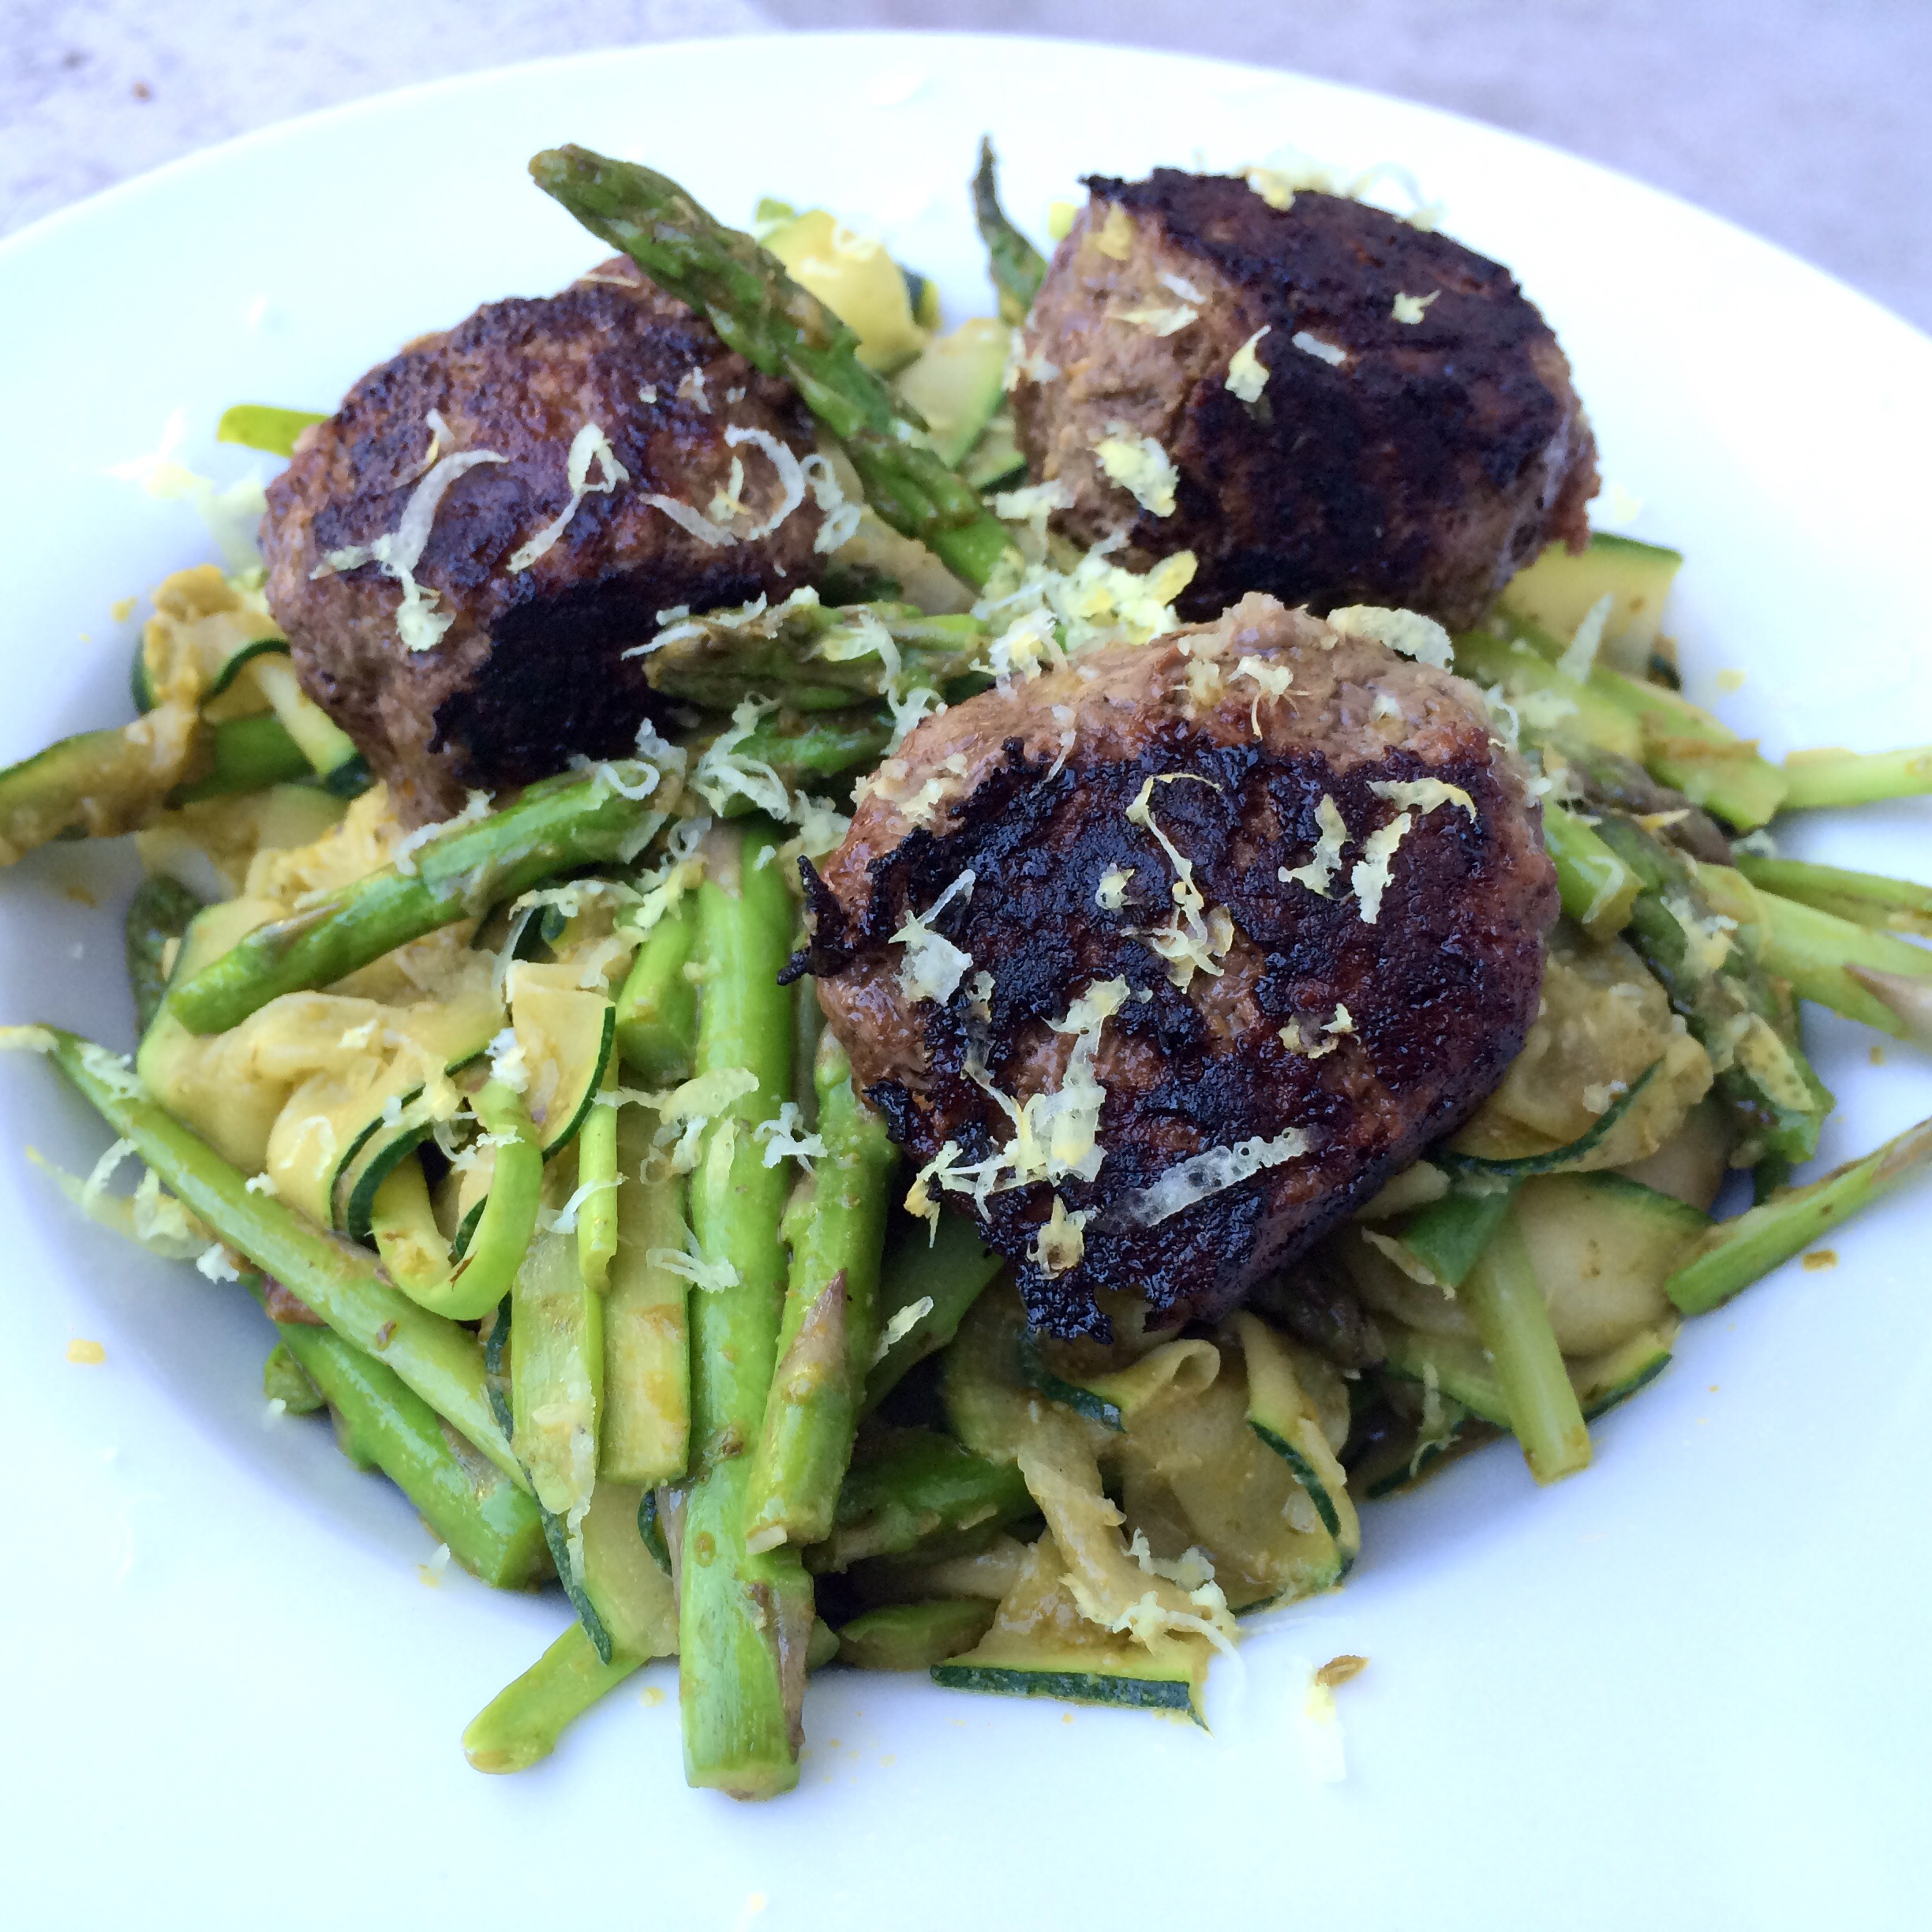 Bison Pesto Meatballs with Zucchini Ribbons | My Engineered Nutrition